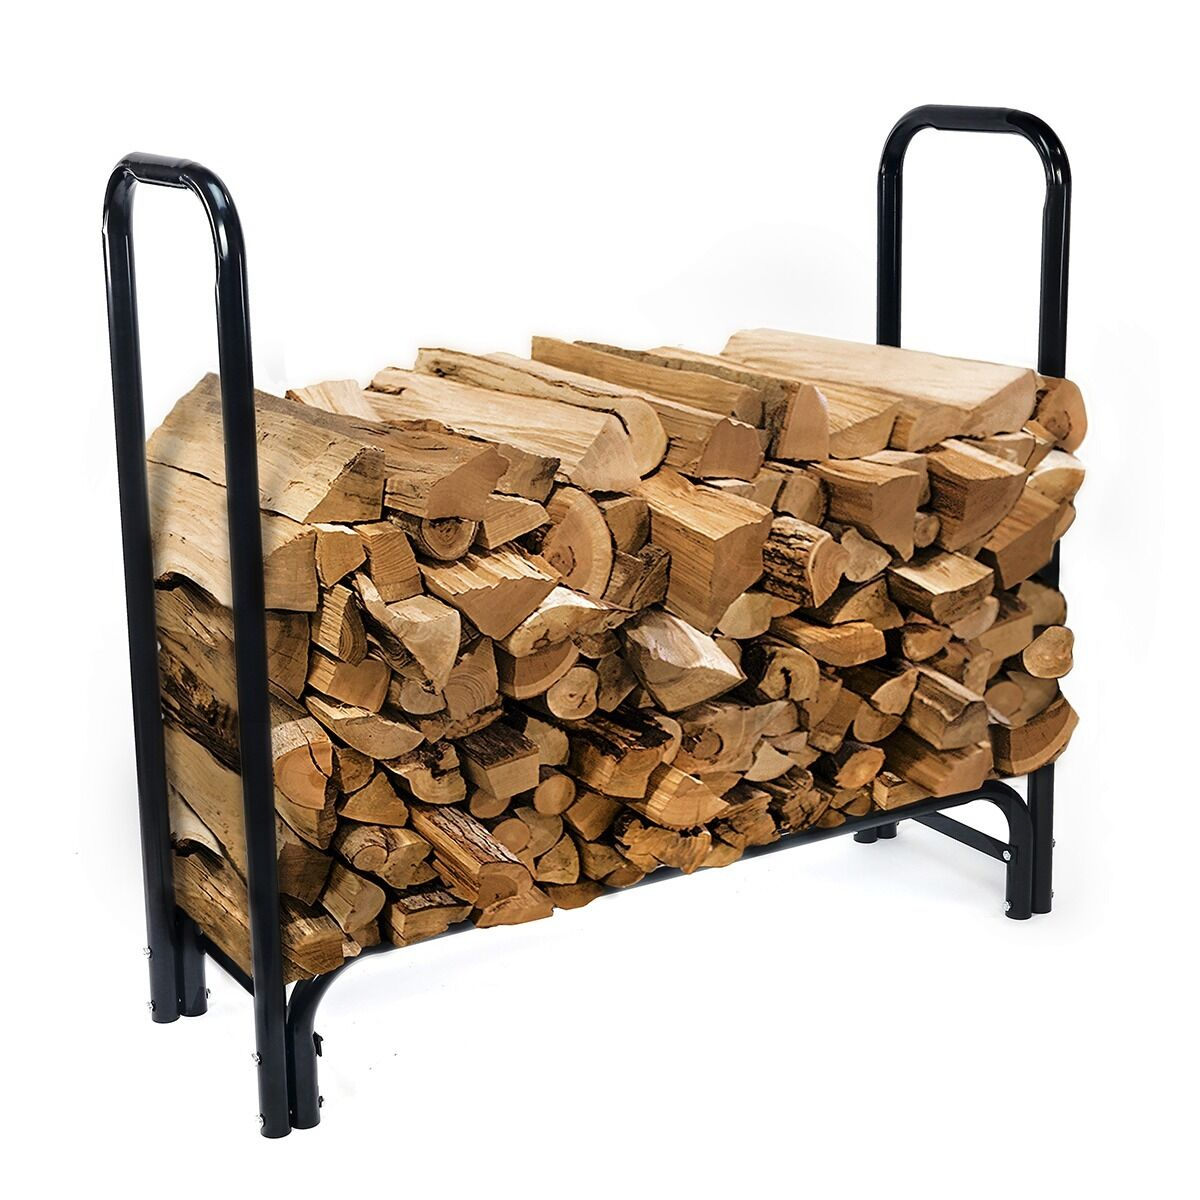 Feet outdoor heavy duty steel firewood log rack wood